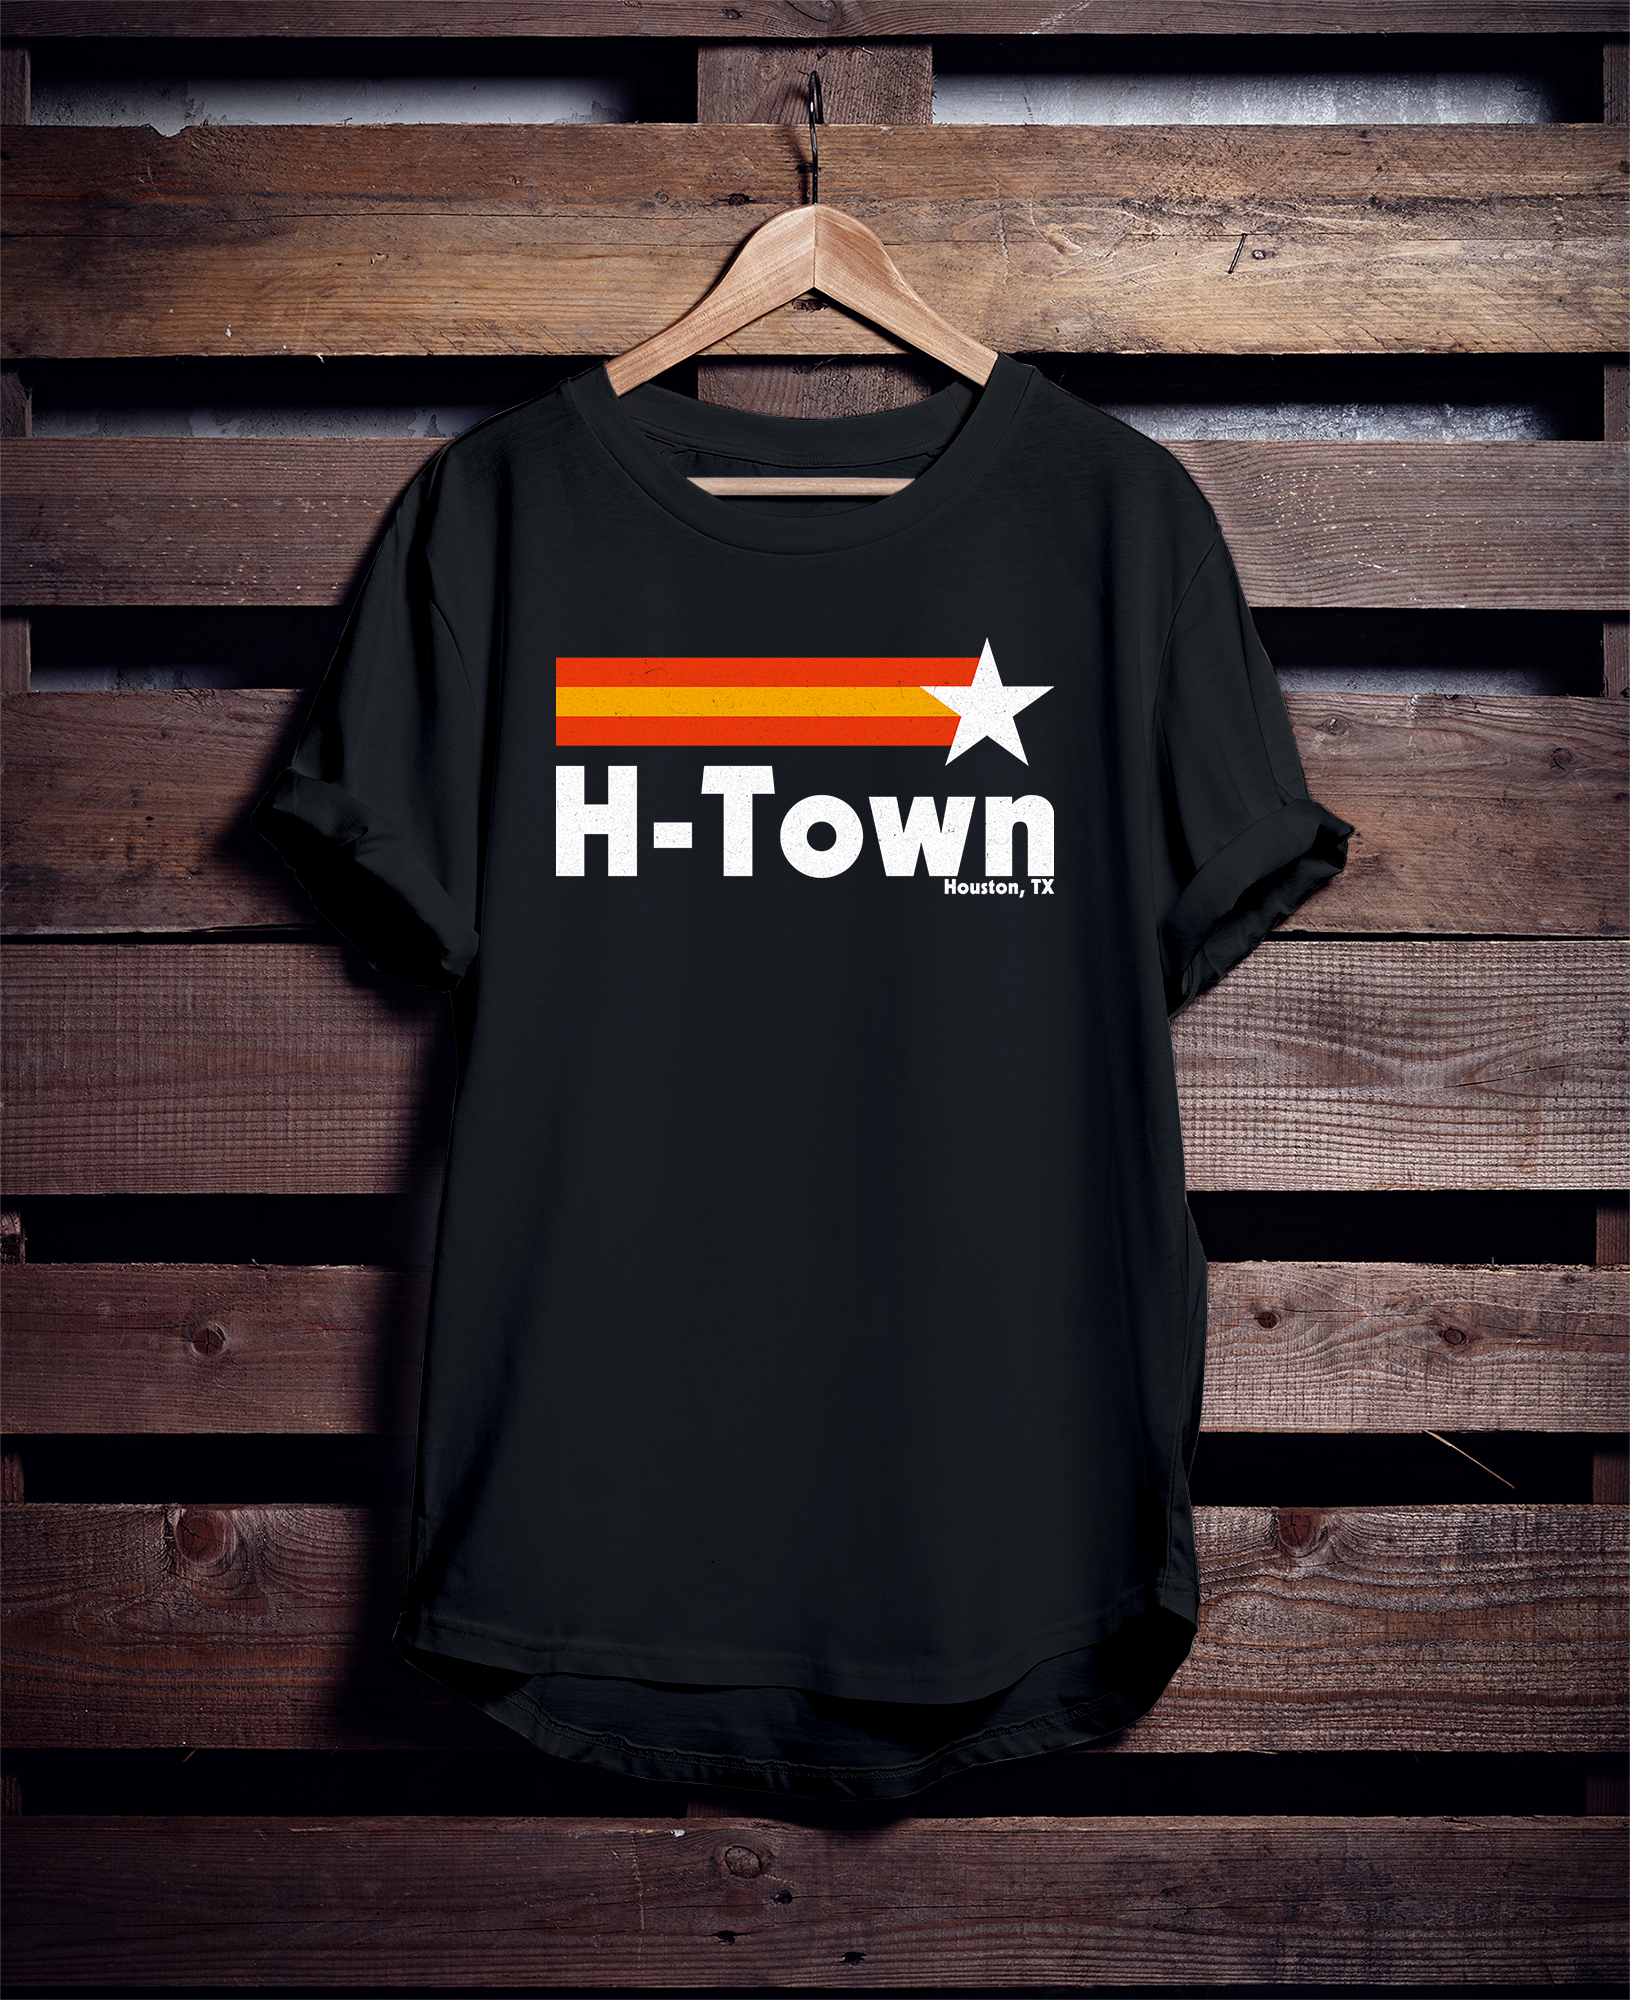 Show your Houston pride with this H-Town Houston Texas t-shirt